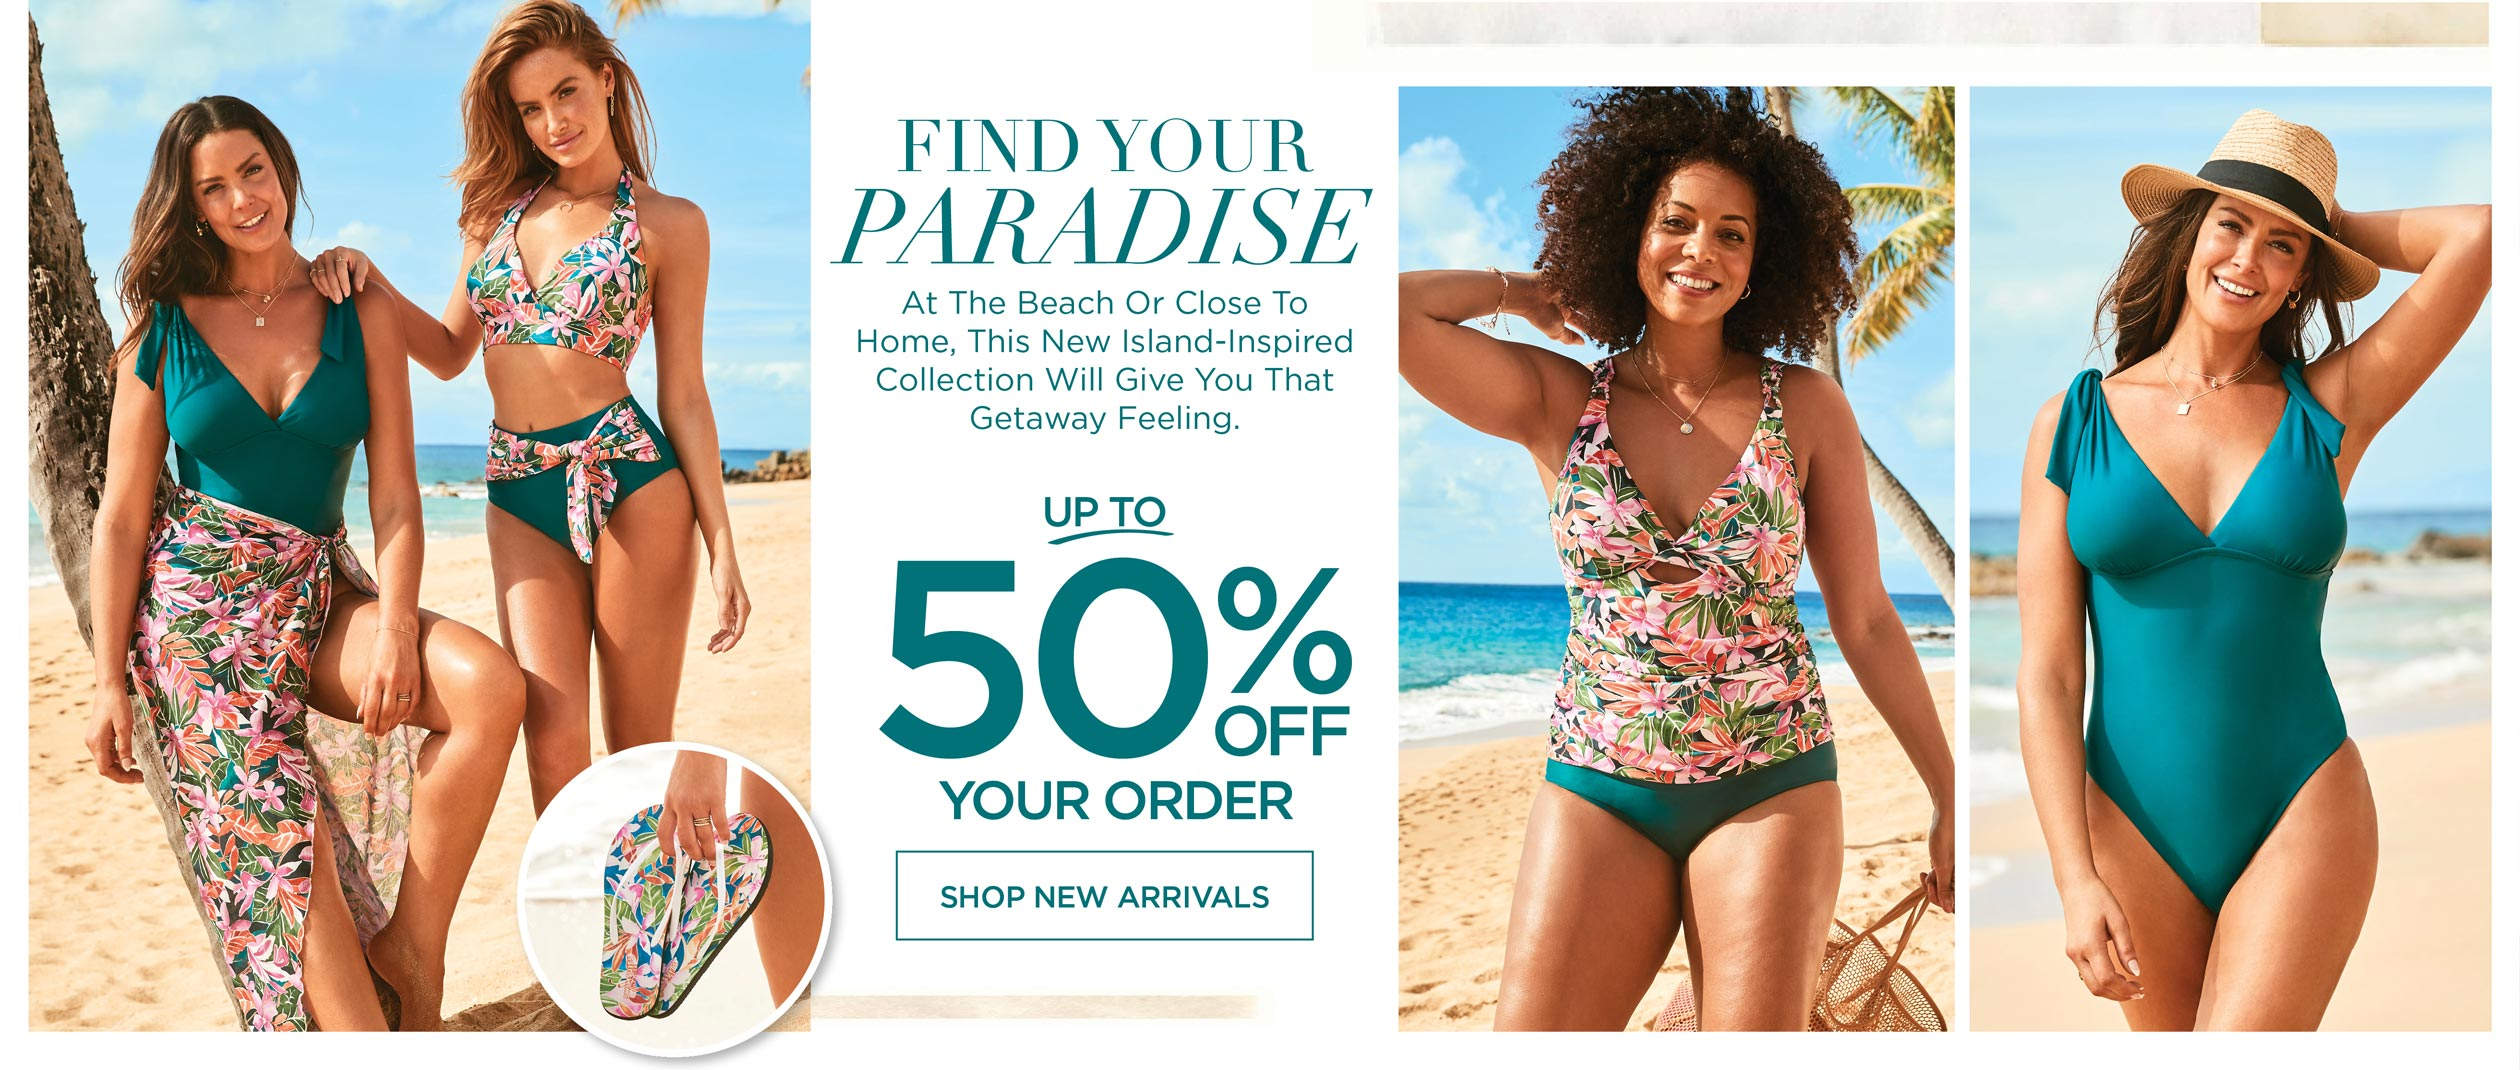 FIND YOUR PARADISE - At the beach or close to home, this new island-inspired collection will give you that getaway feeling. Up to 50% OFF your order!